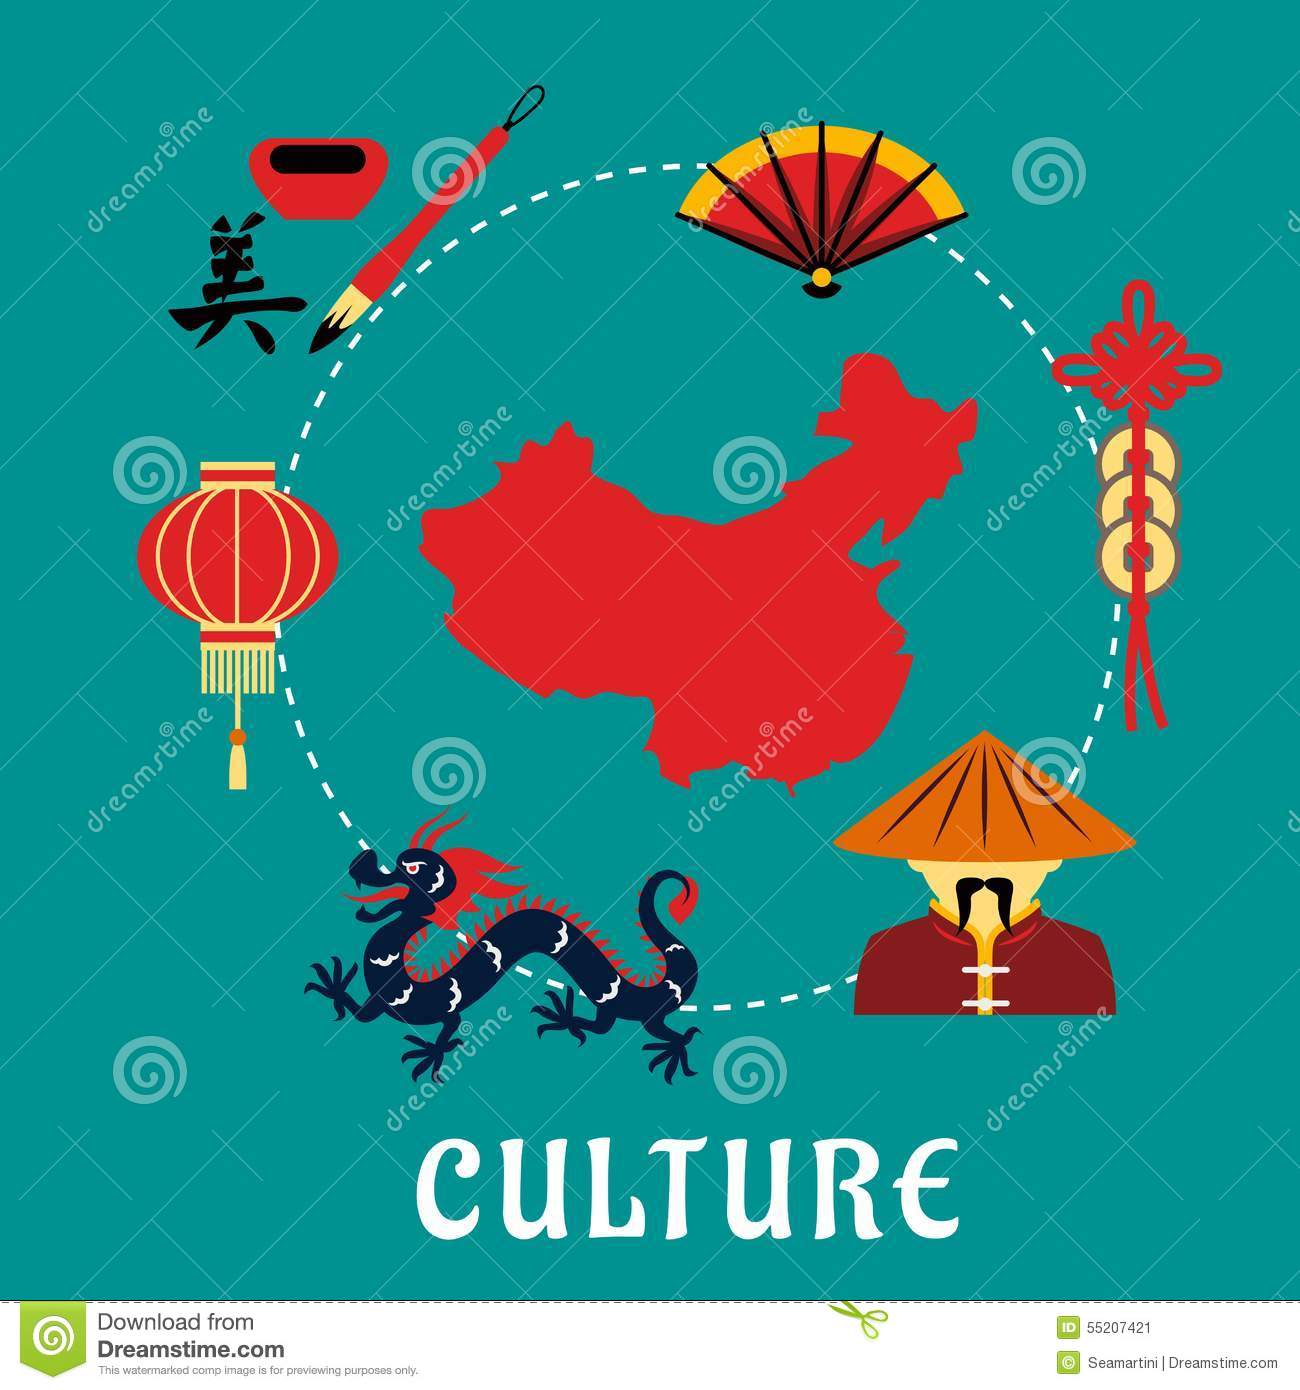 chinese culture Explore chinese history and culture from the perspective of the individual  through philosophical texts, literary works, and art.